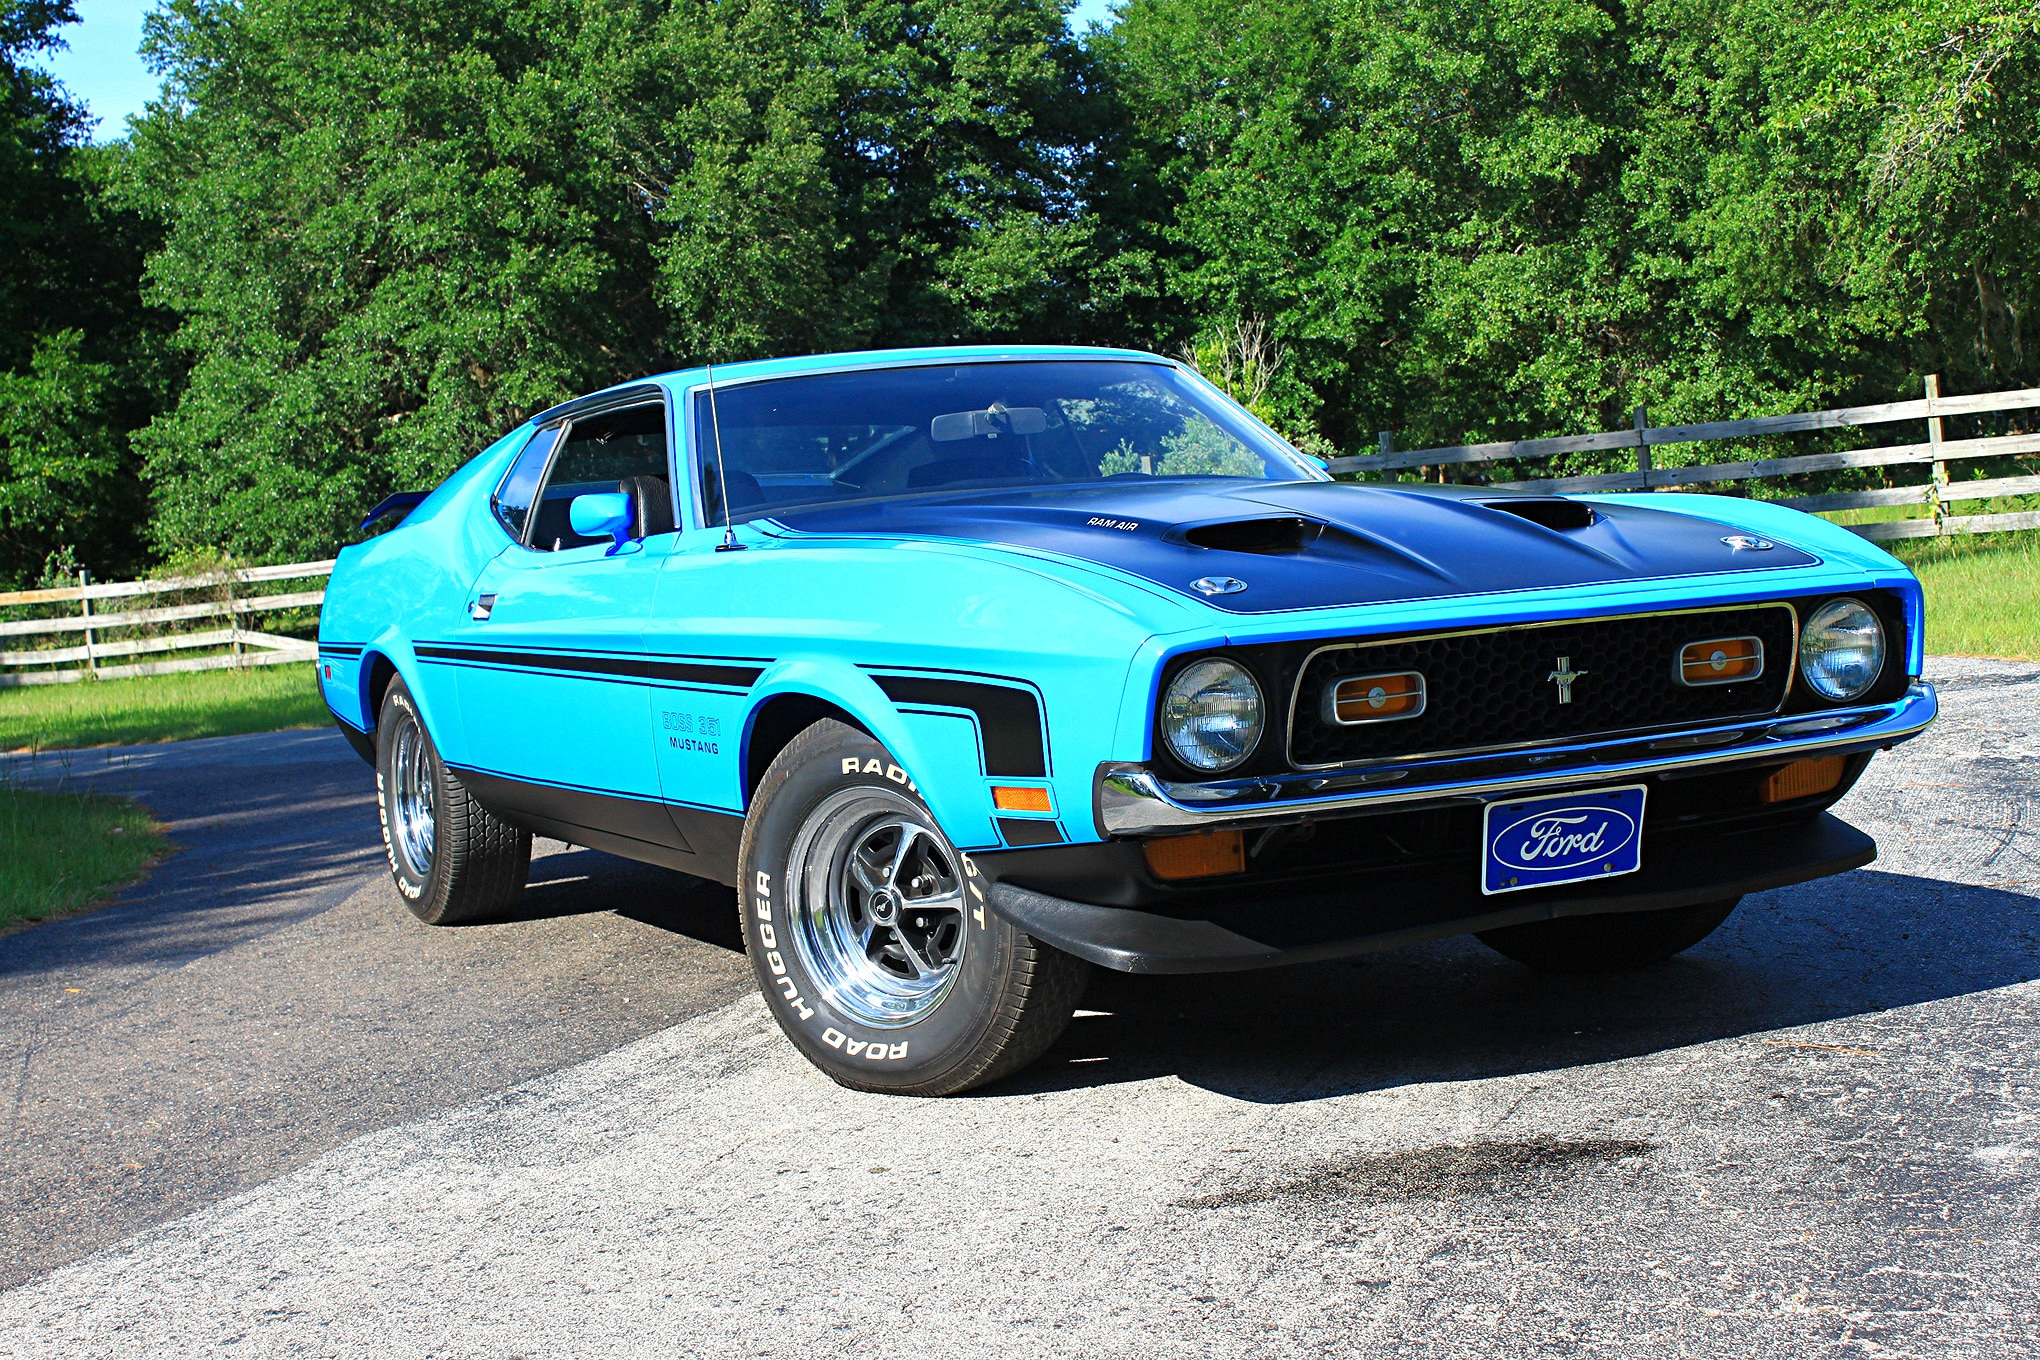 33 1971 Ford Mustang Boss 351 Blue Front Three Quarter